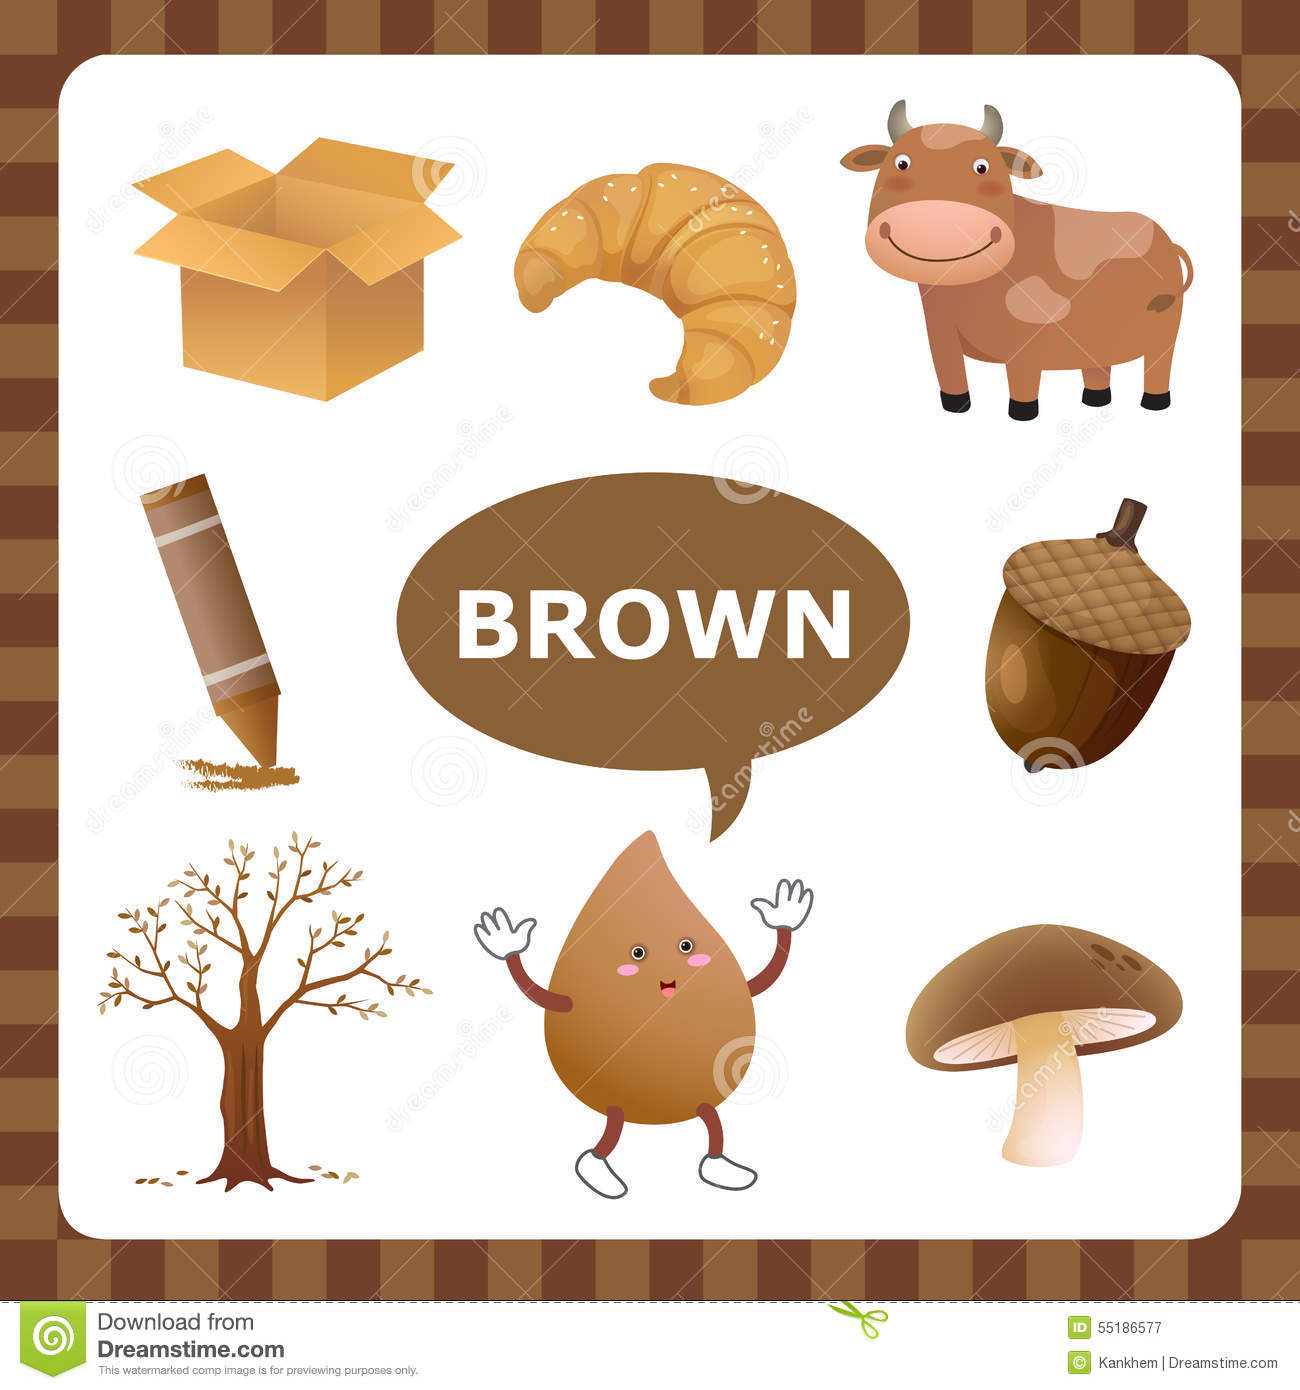 Things That Are Brown Clipart.